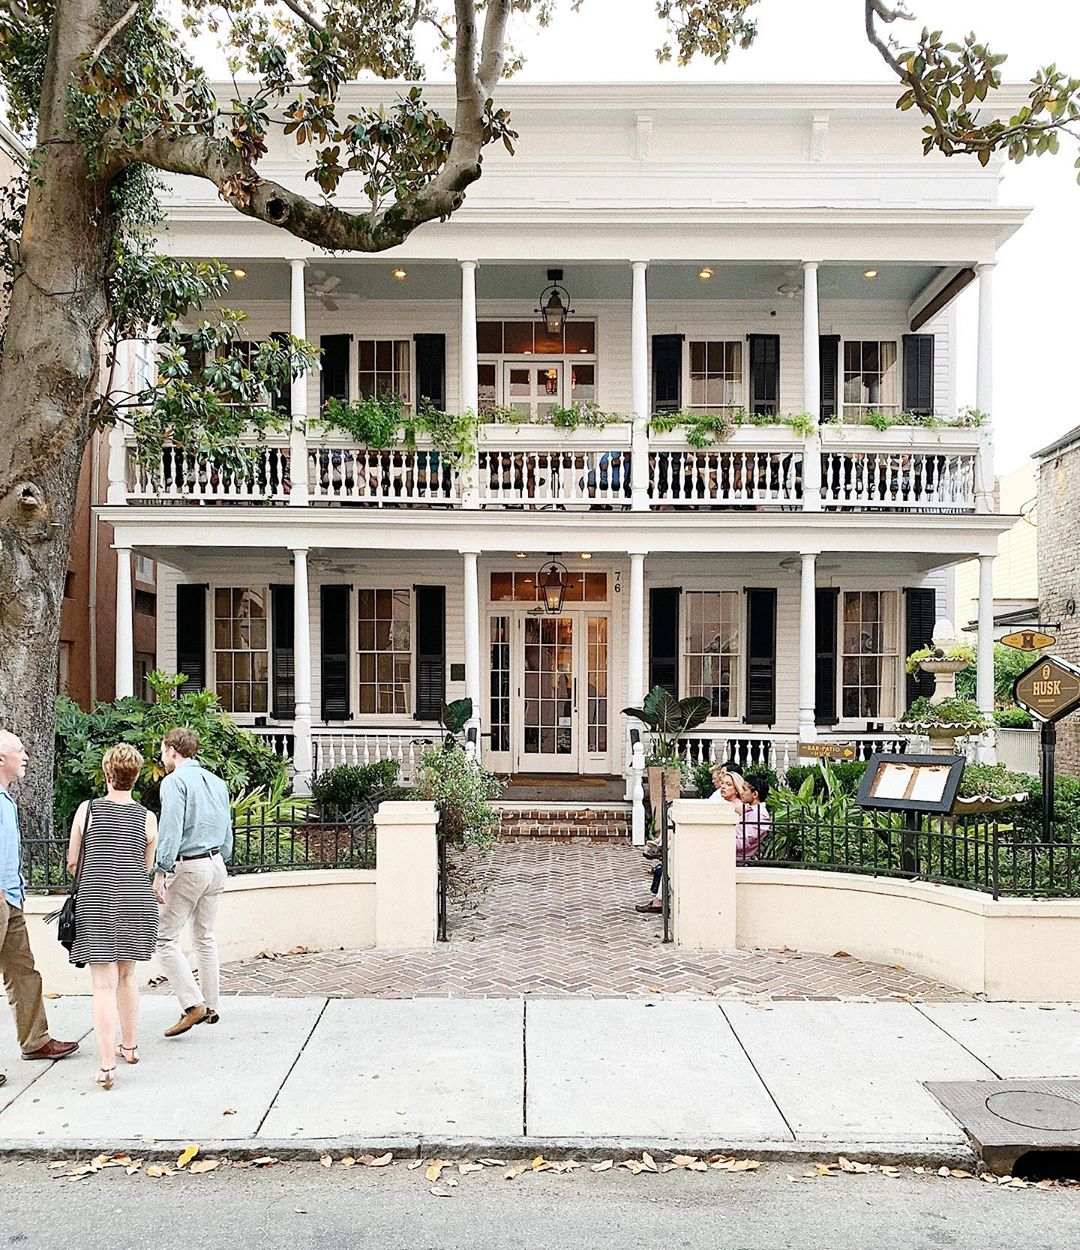 The Everygirl's Weekend Guide to Charleston, South Carolina